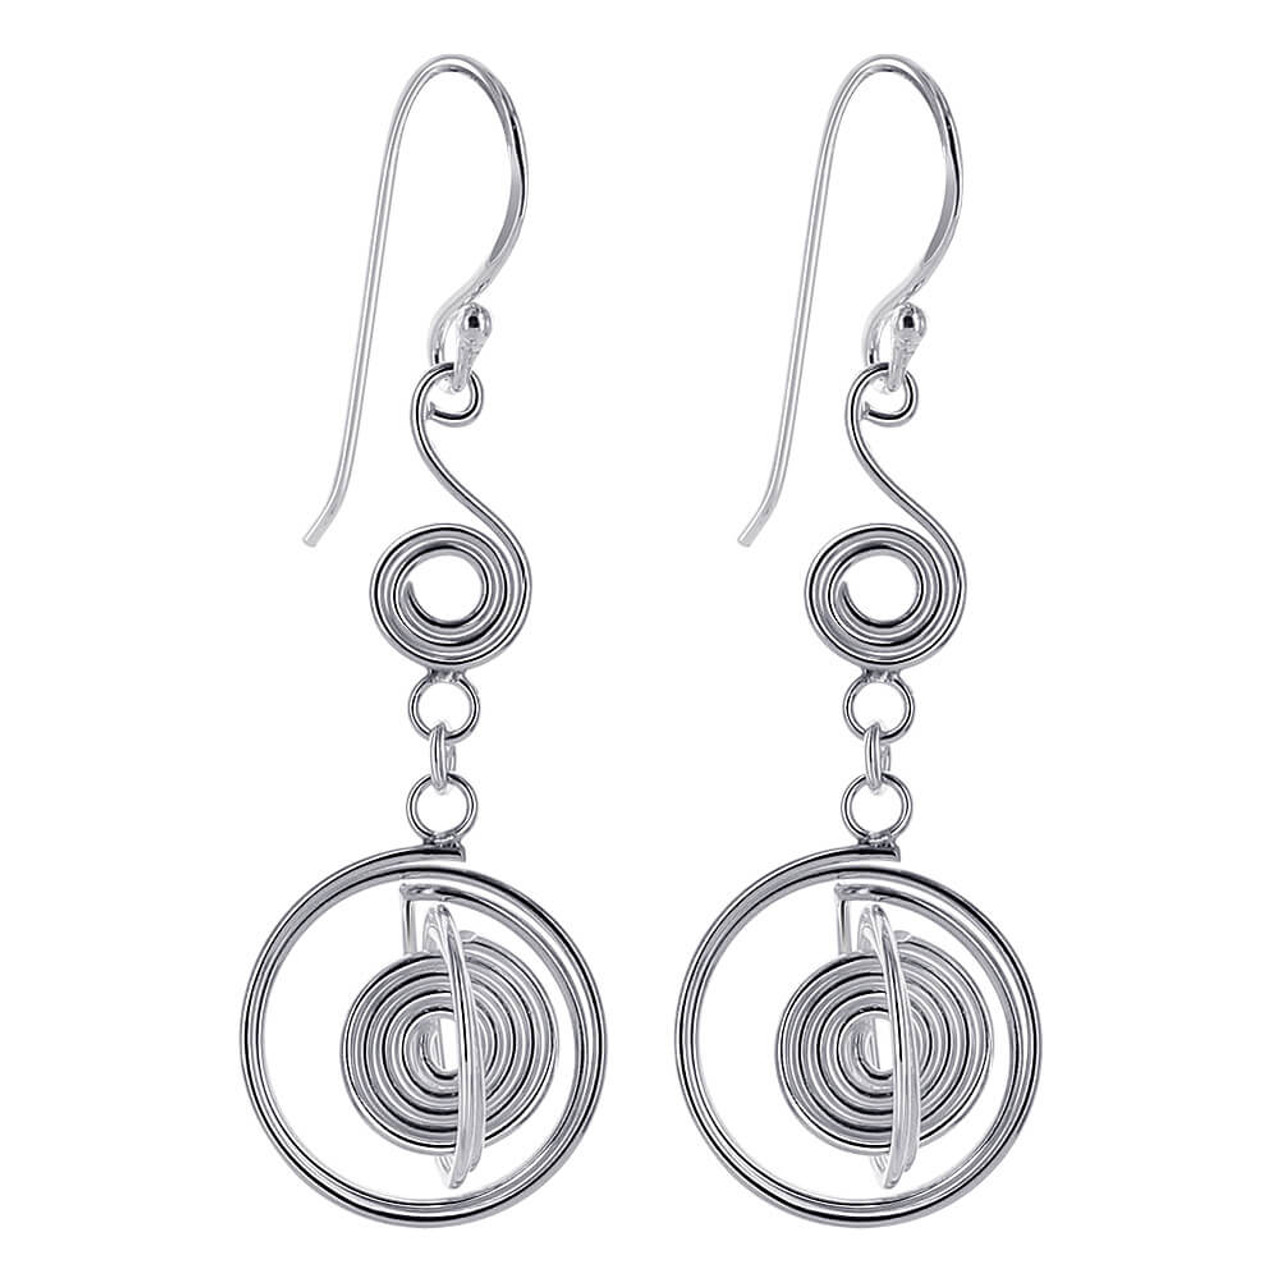 Coiled Wire Design Dangle Earrings